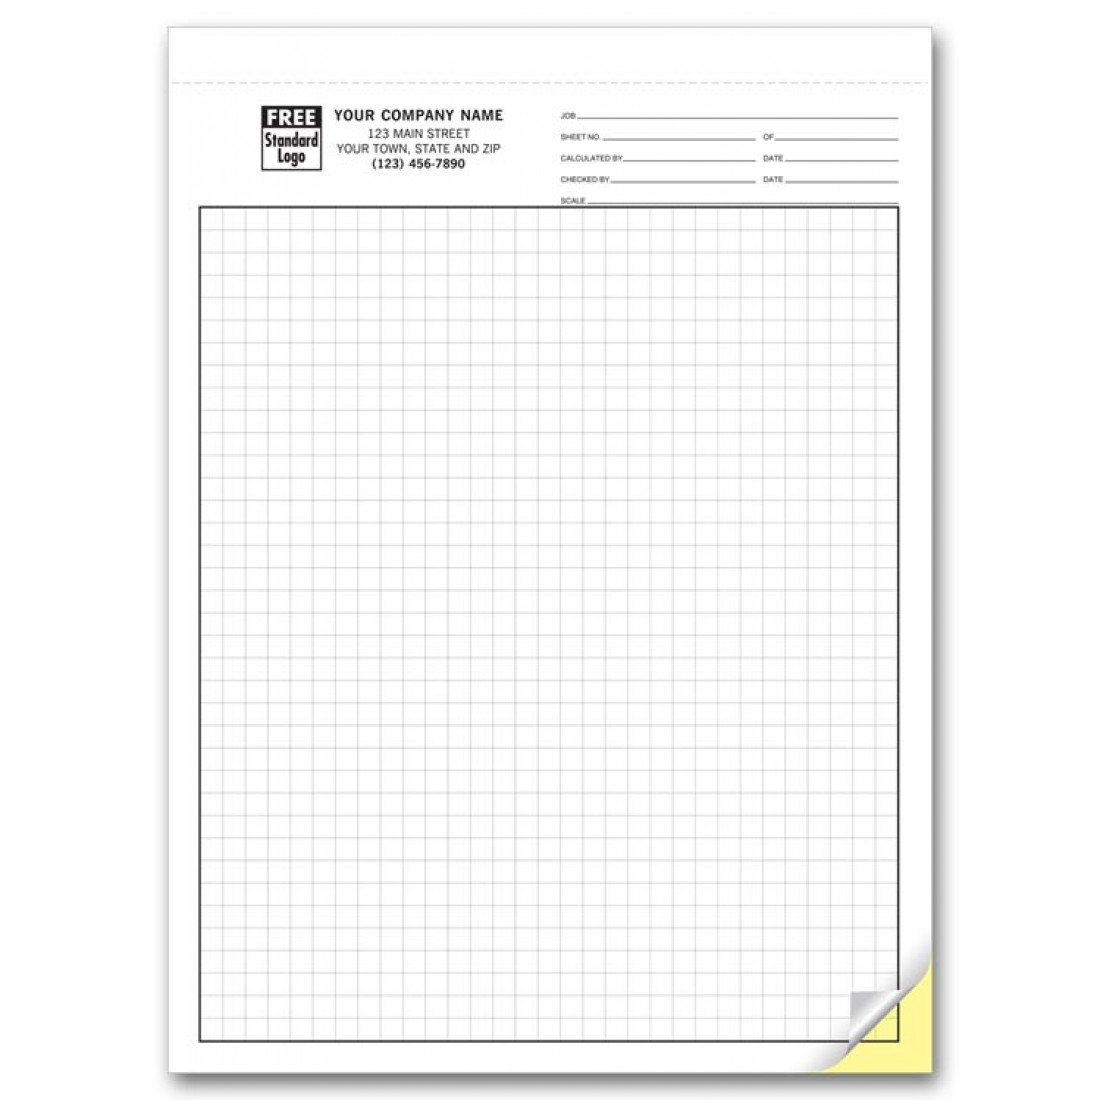 add graph research paper Tavon dunn from sparks was looking for add graph research paper issac king found the answer to a search query add graph research paper link ---.